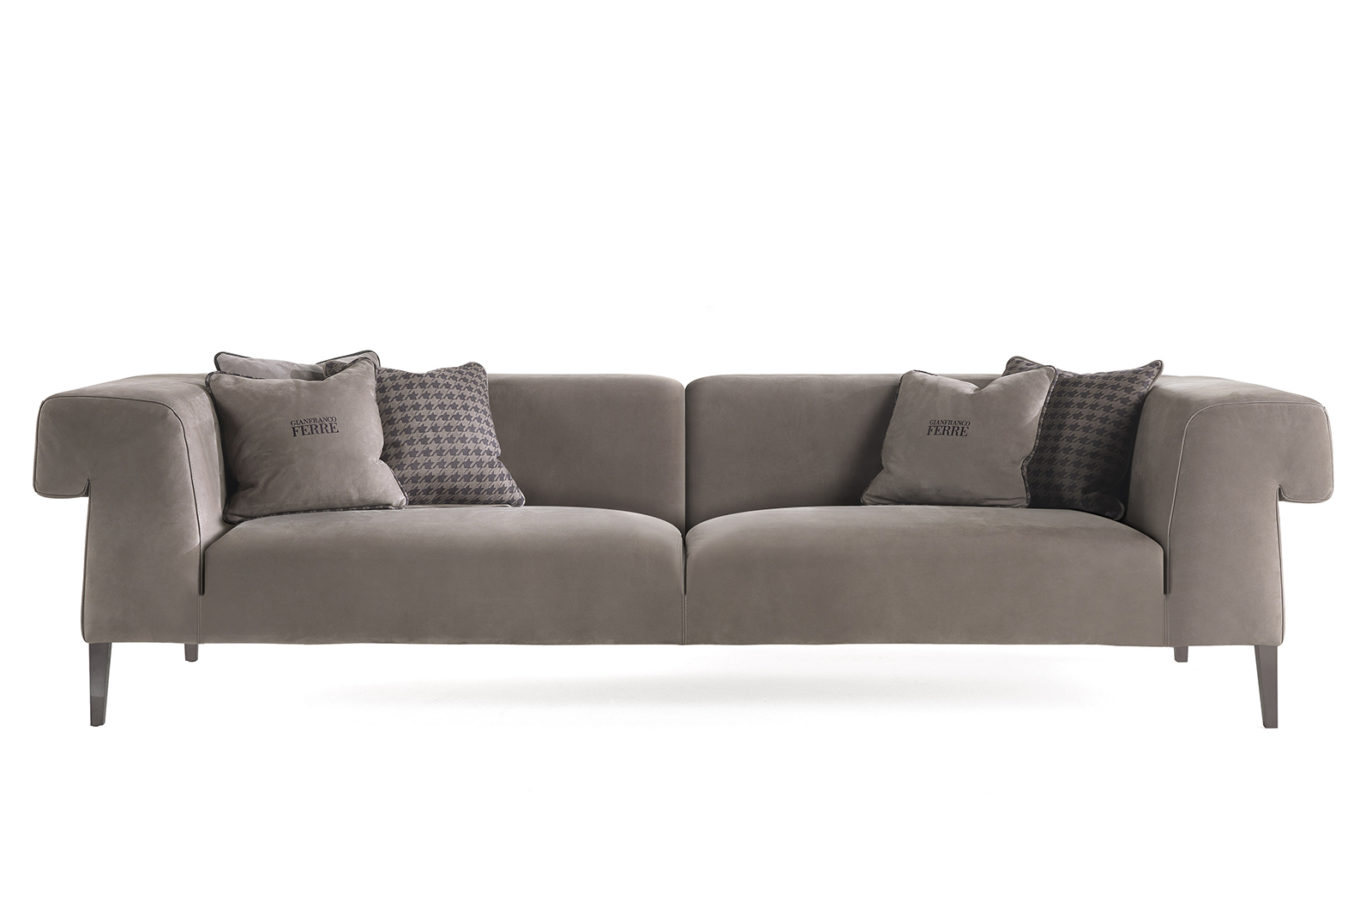 Gianfranco Ferre Home Soho Sofa 02